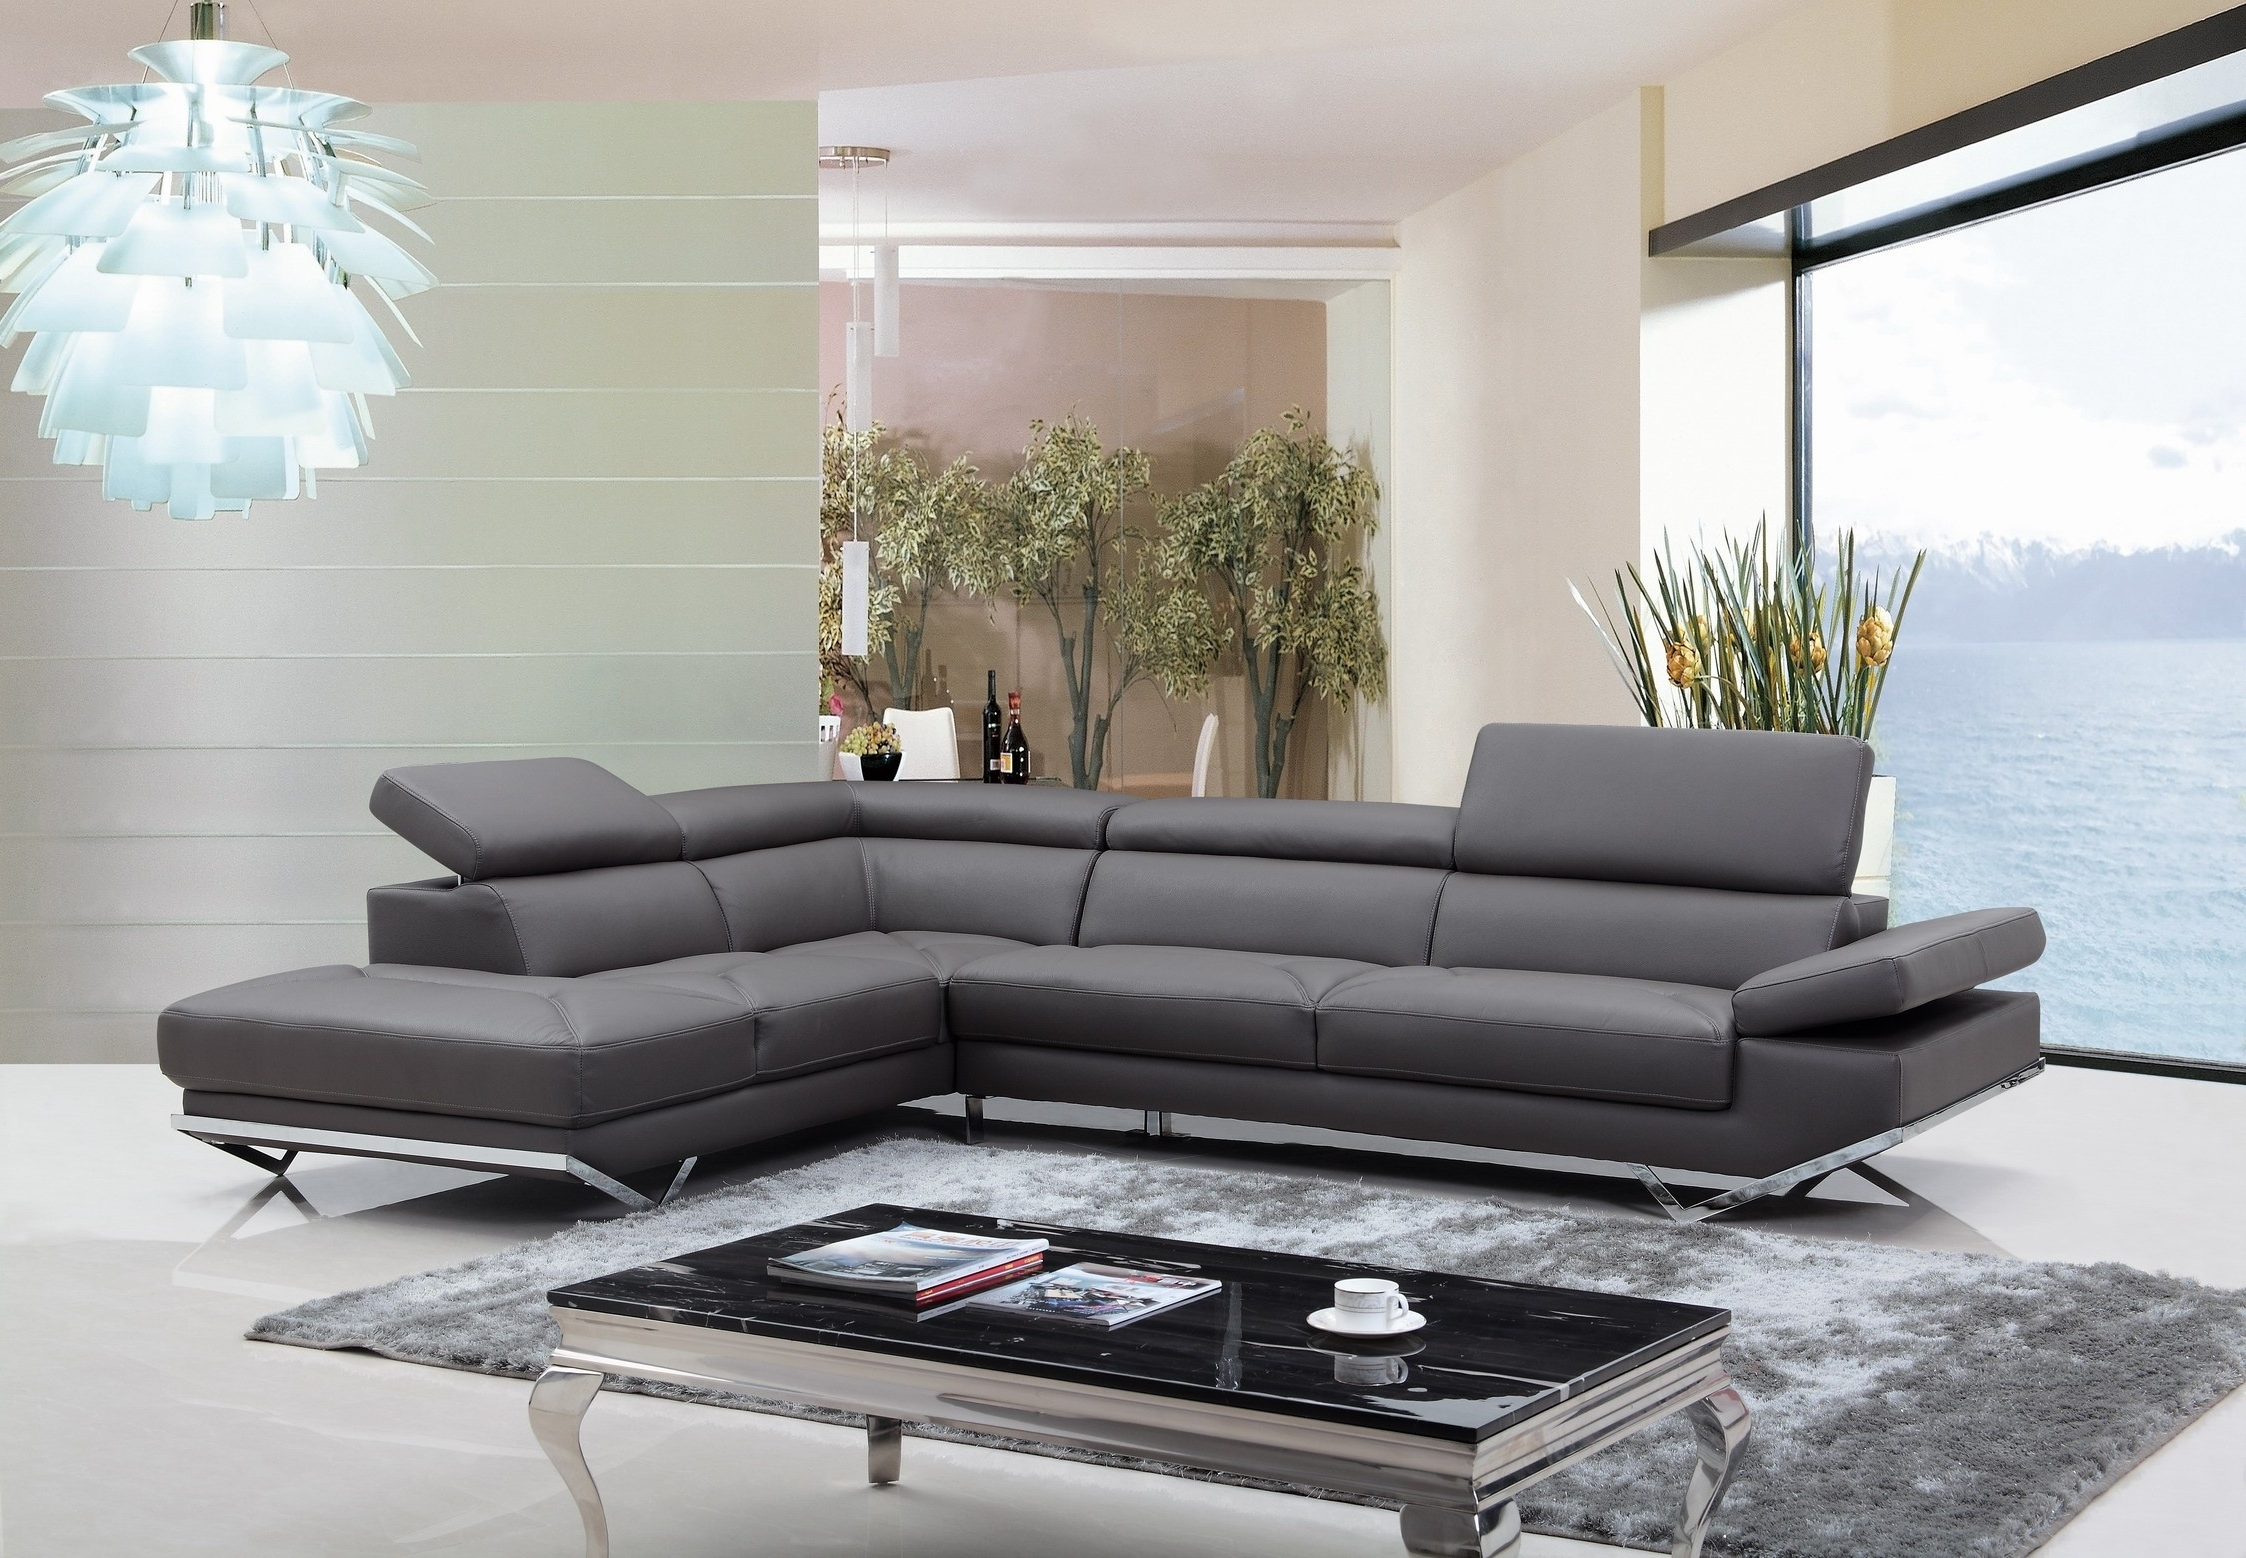 Sofa Modernr Ideas For Living Room Hupehome Contemporary Furniture In Current High Point Nc Sectional Sofas (View 13 of 15)